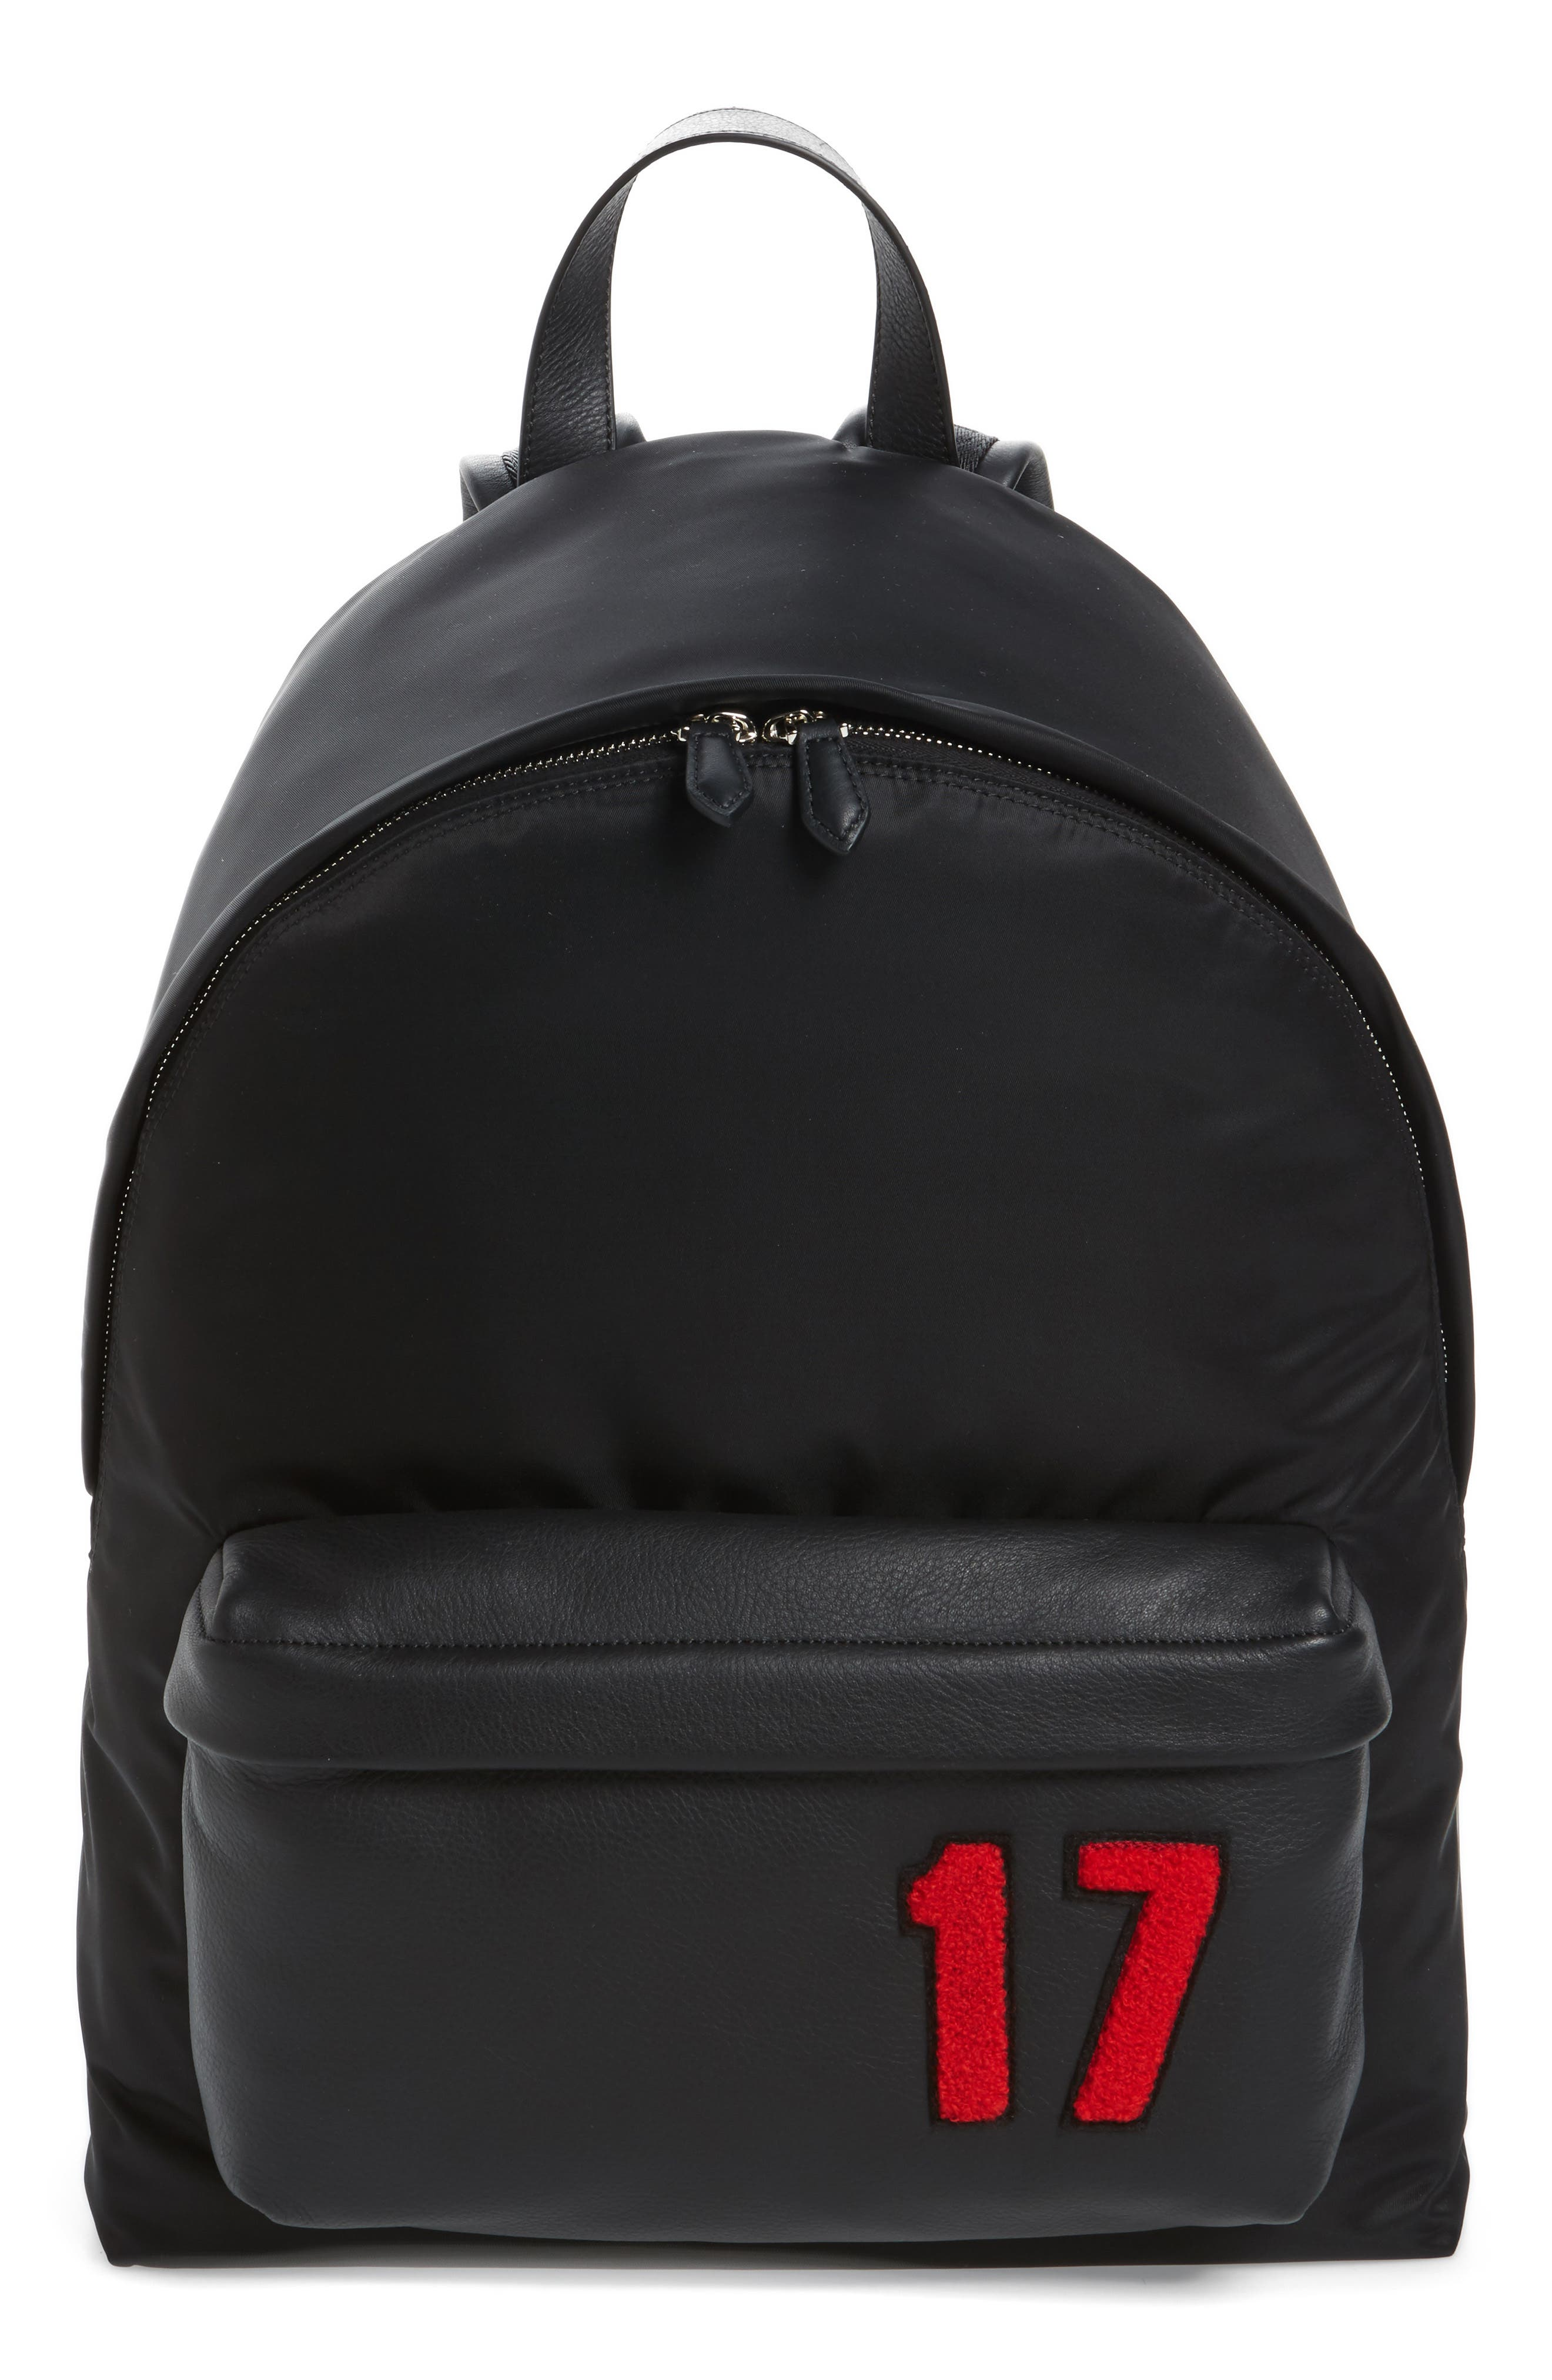 17 Patch Mix Media Backpack,                             Main thumbnail 1, color,                             009